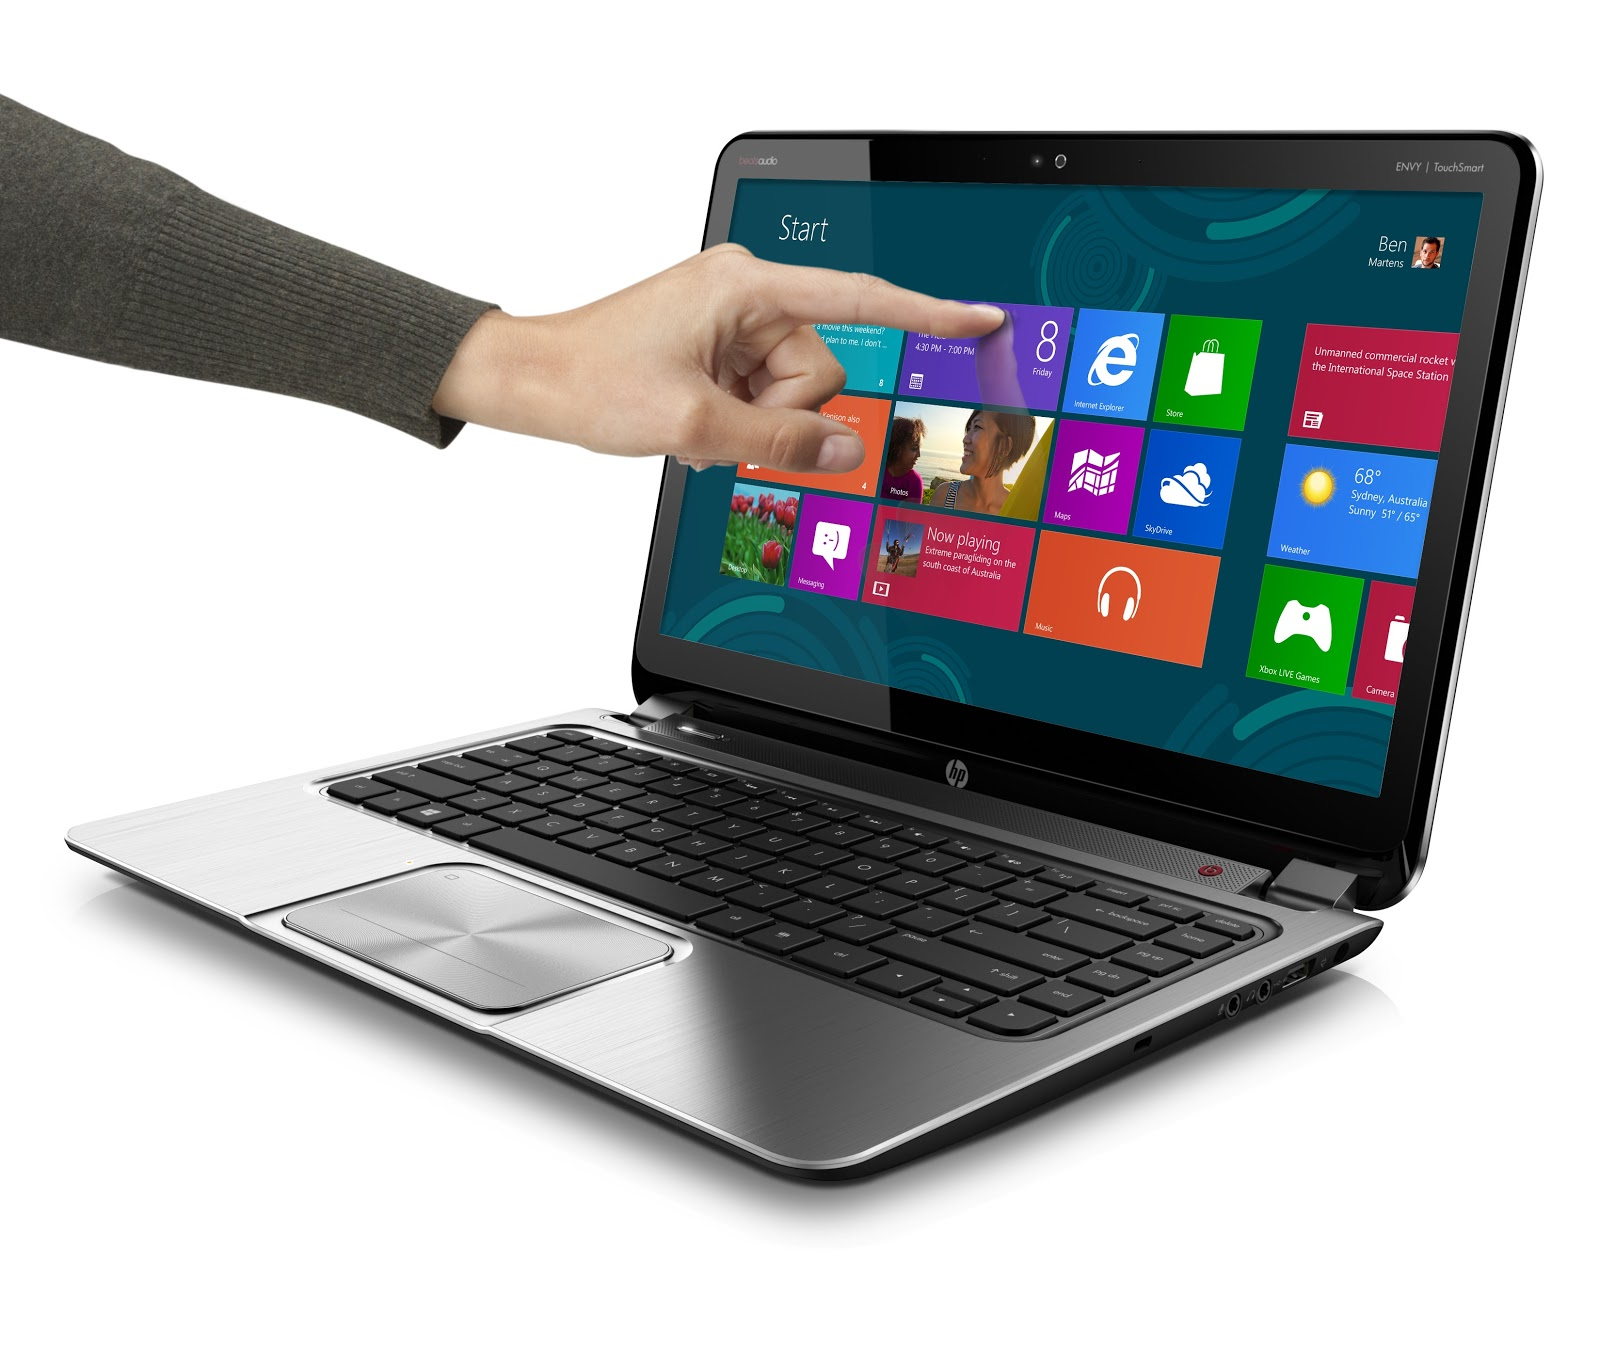 Top 5 Touch Enabled Windows 8 Laptops